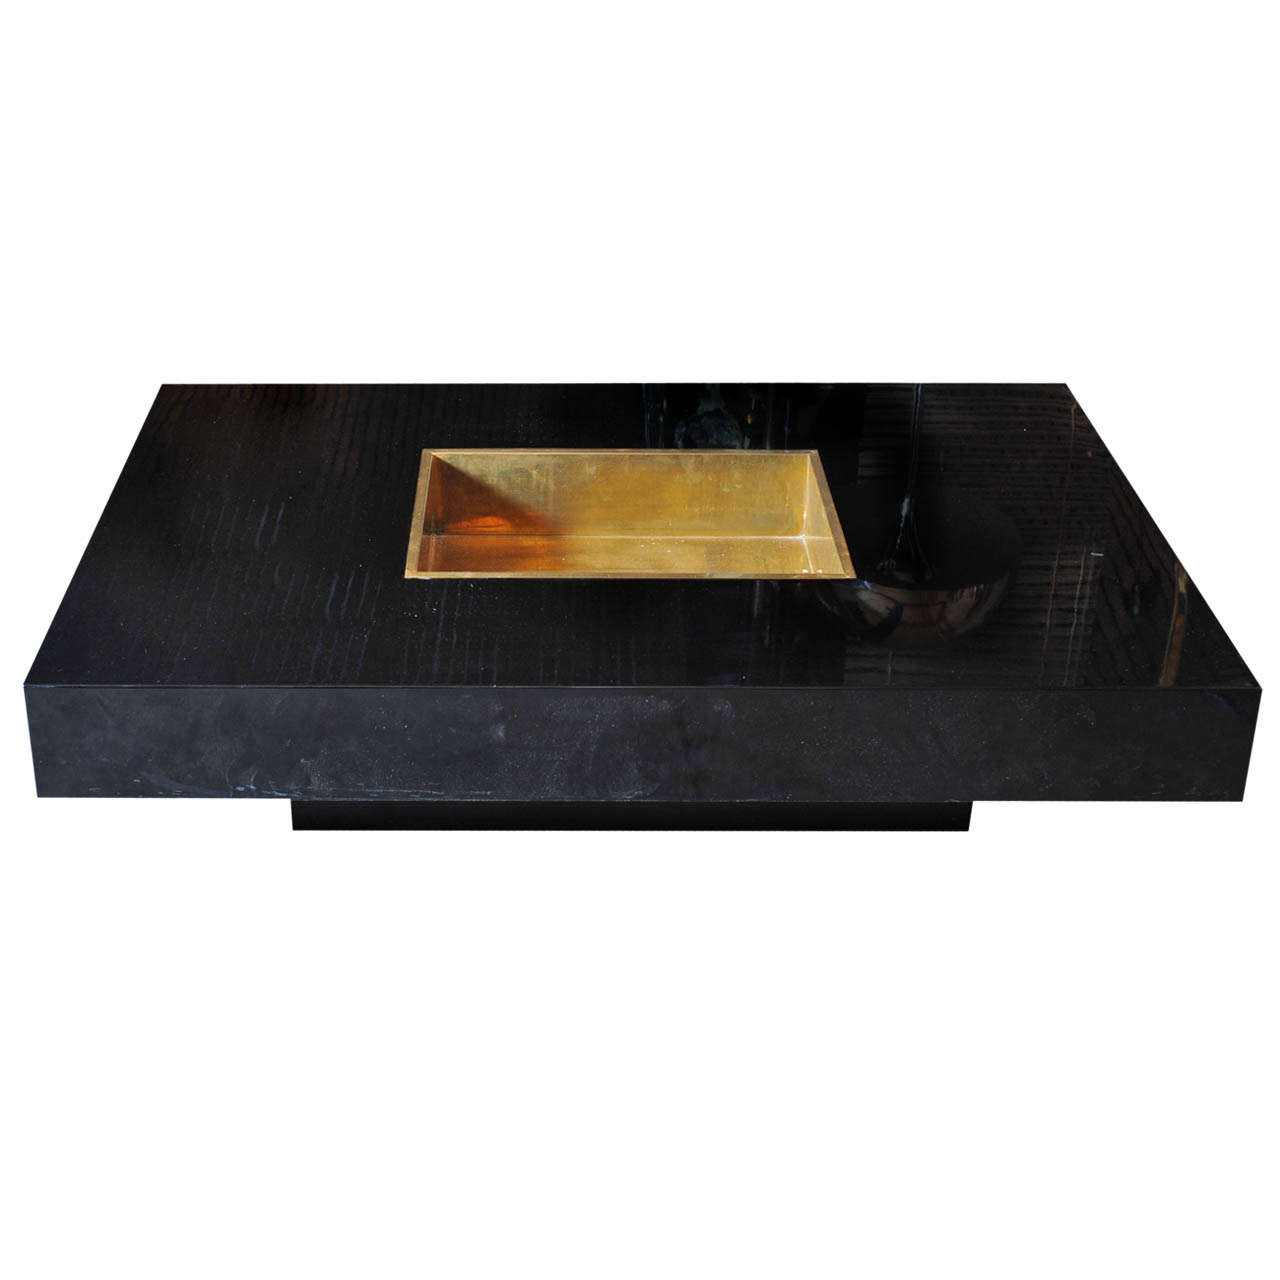 Willy Rizzo Coffeetable With Ice Cube Box At 1stdibs